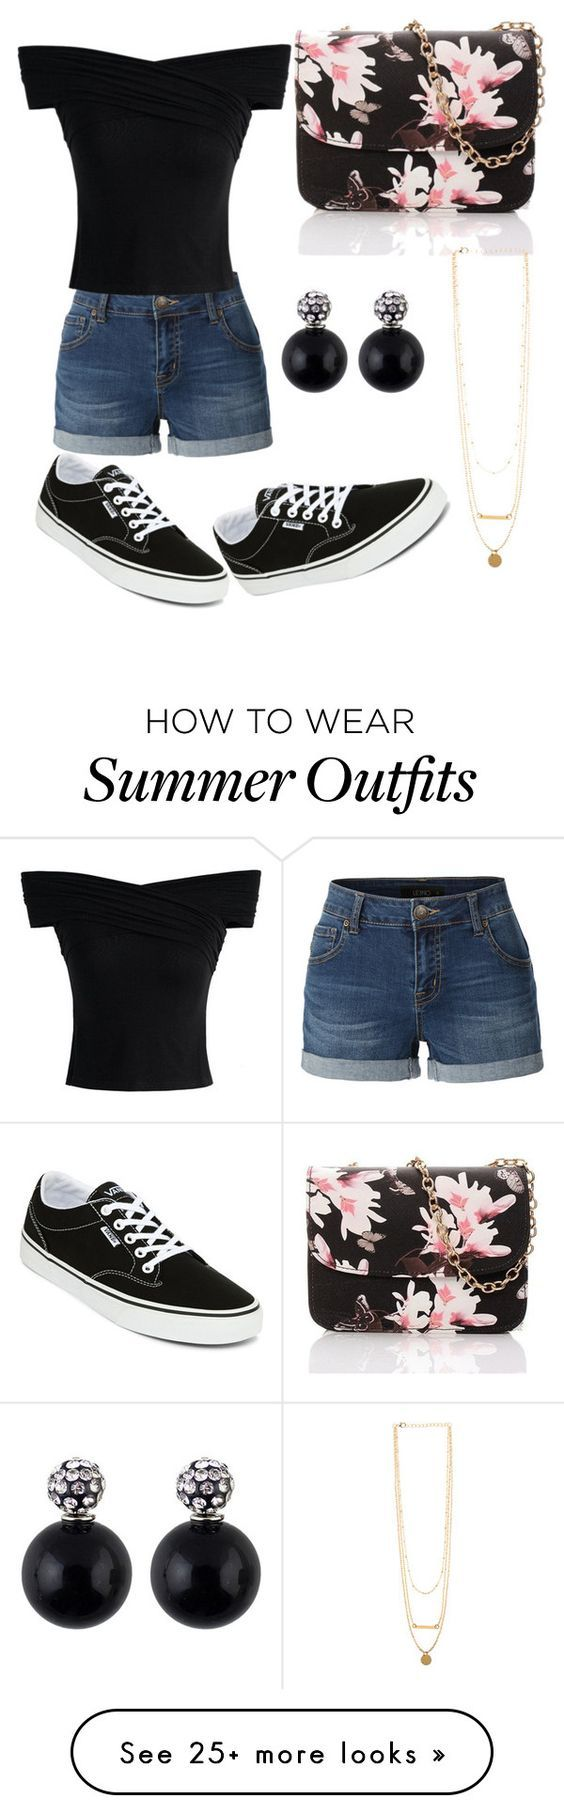 Casual Outfits for Girls: 10 Amazing Outfit Ideas with Shorts